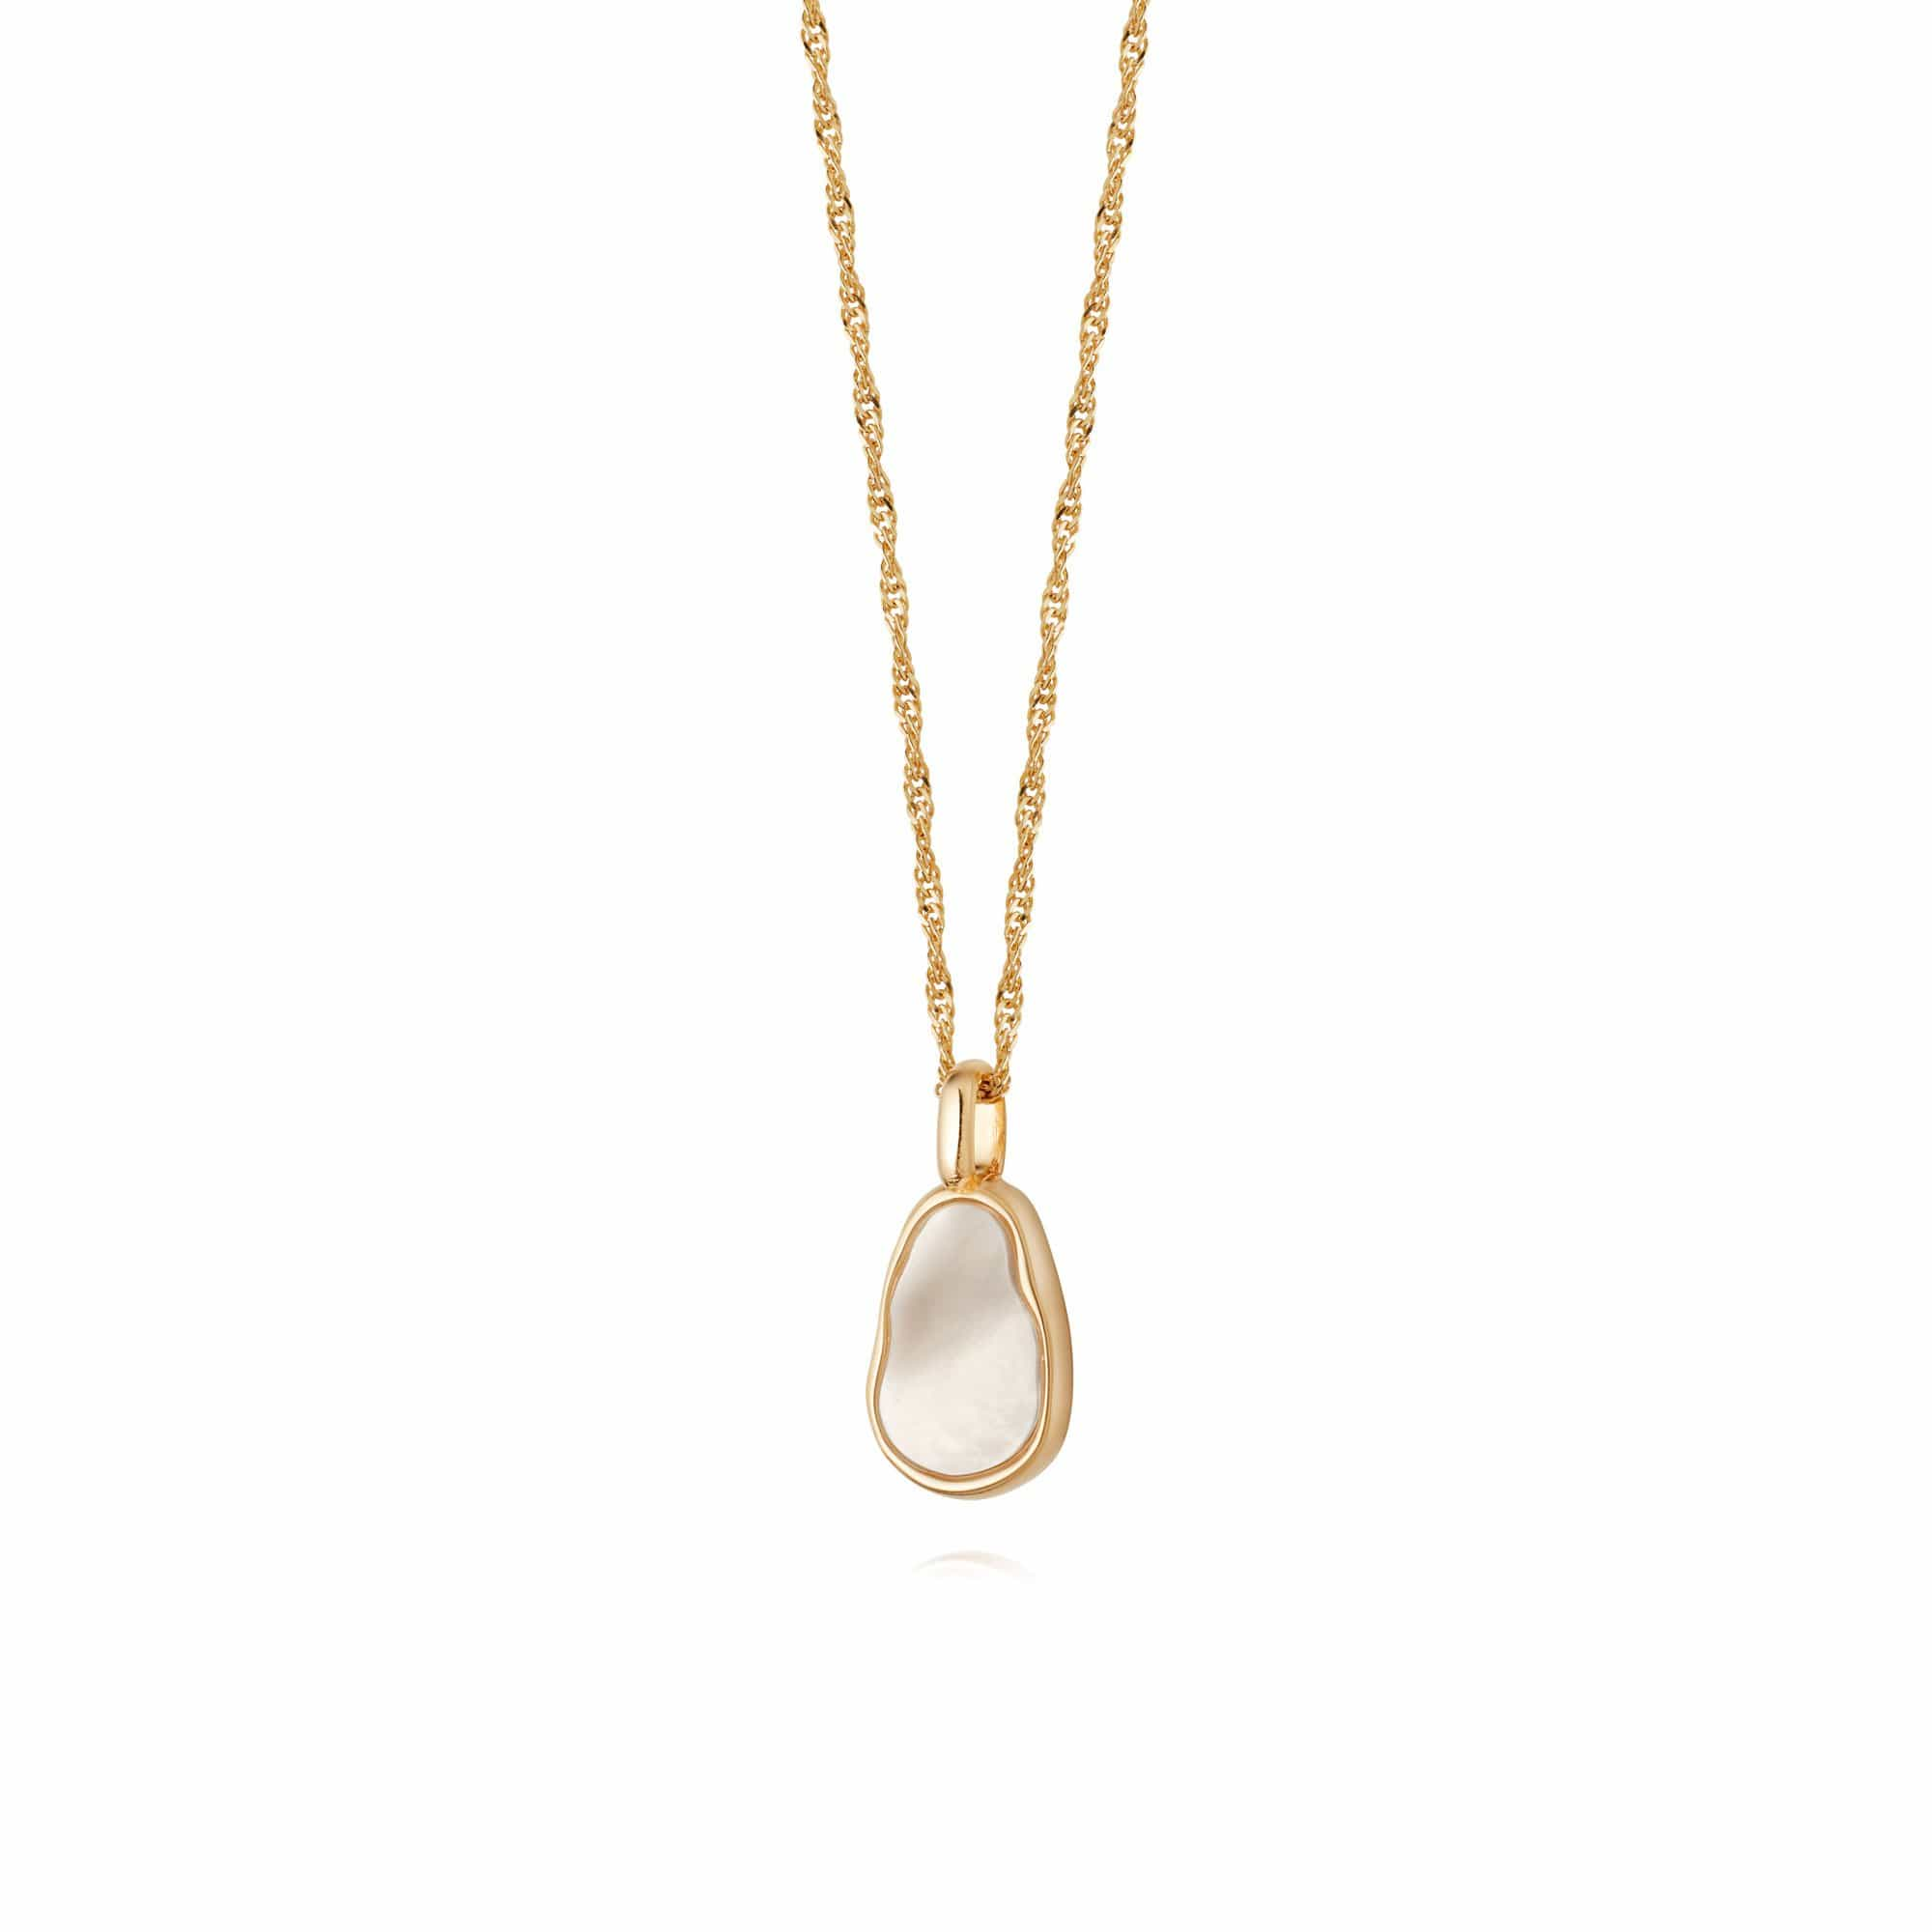 ISLA MOTHER OF PEARL NECKLACE - 18CT GOLD PLATE